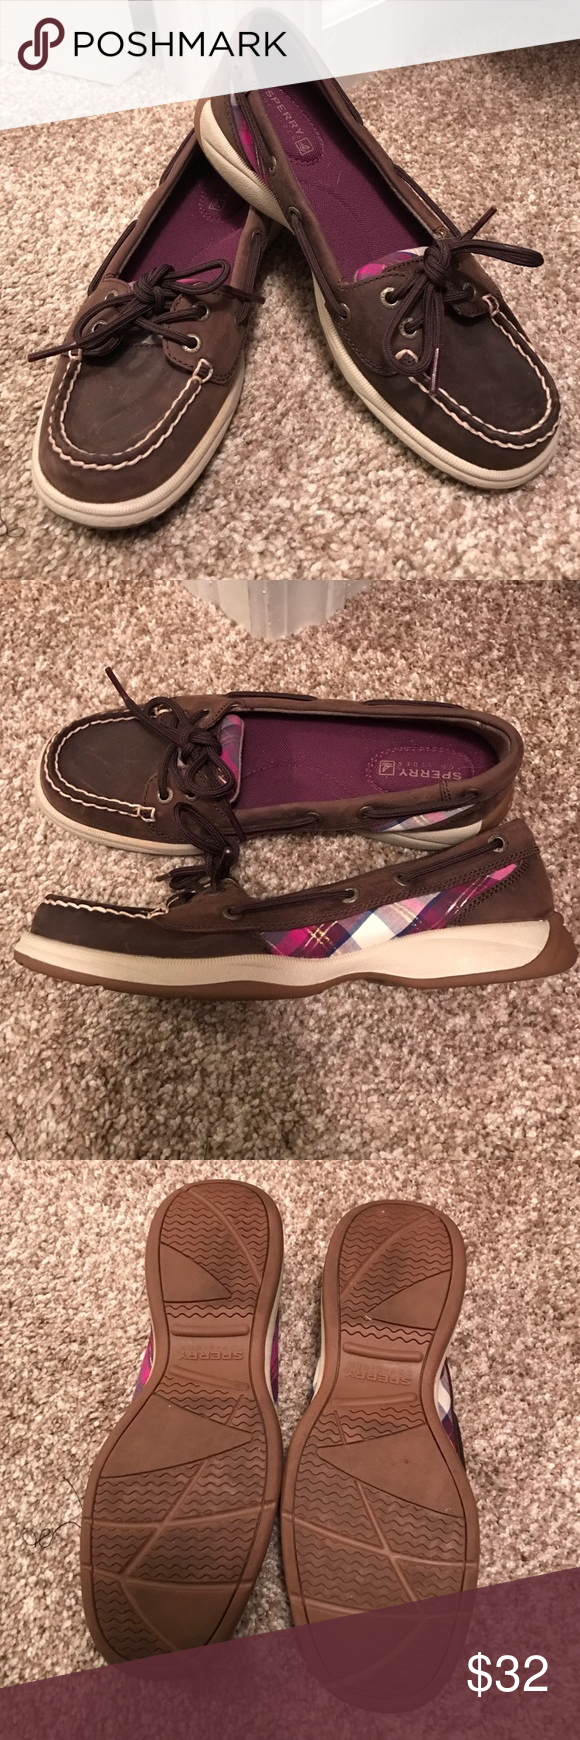 ceb25fde05ce2f Dark brown with pink and purple plaid on the sides. So cute!! Worn one  time. Like new condition. Make me an offer!! Sperry Top-Sider Shoes Flats  ...